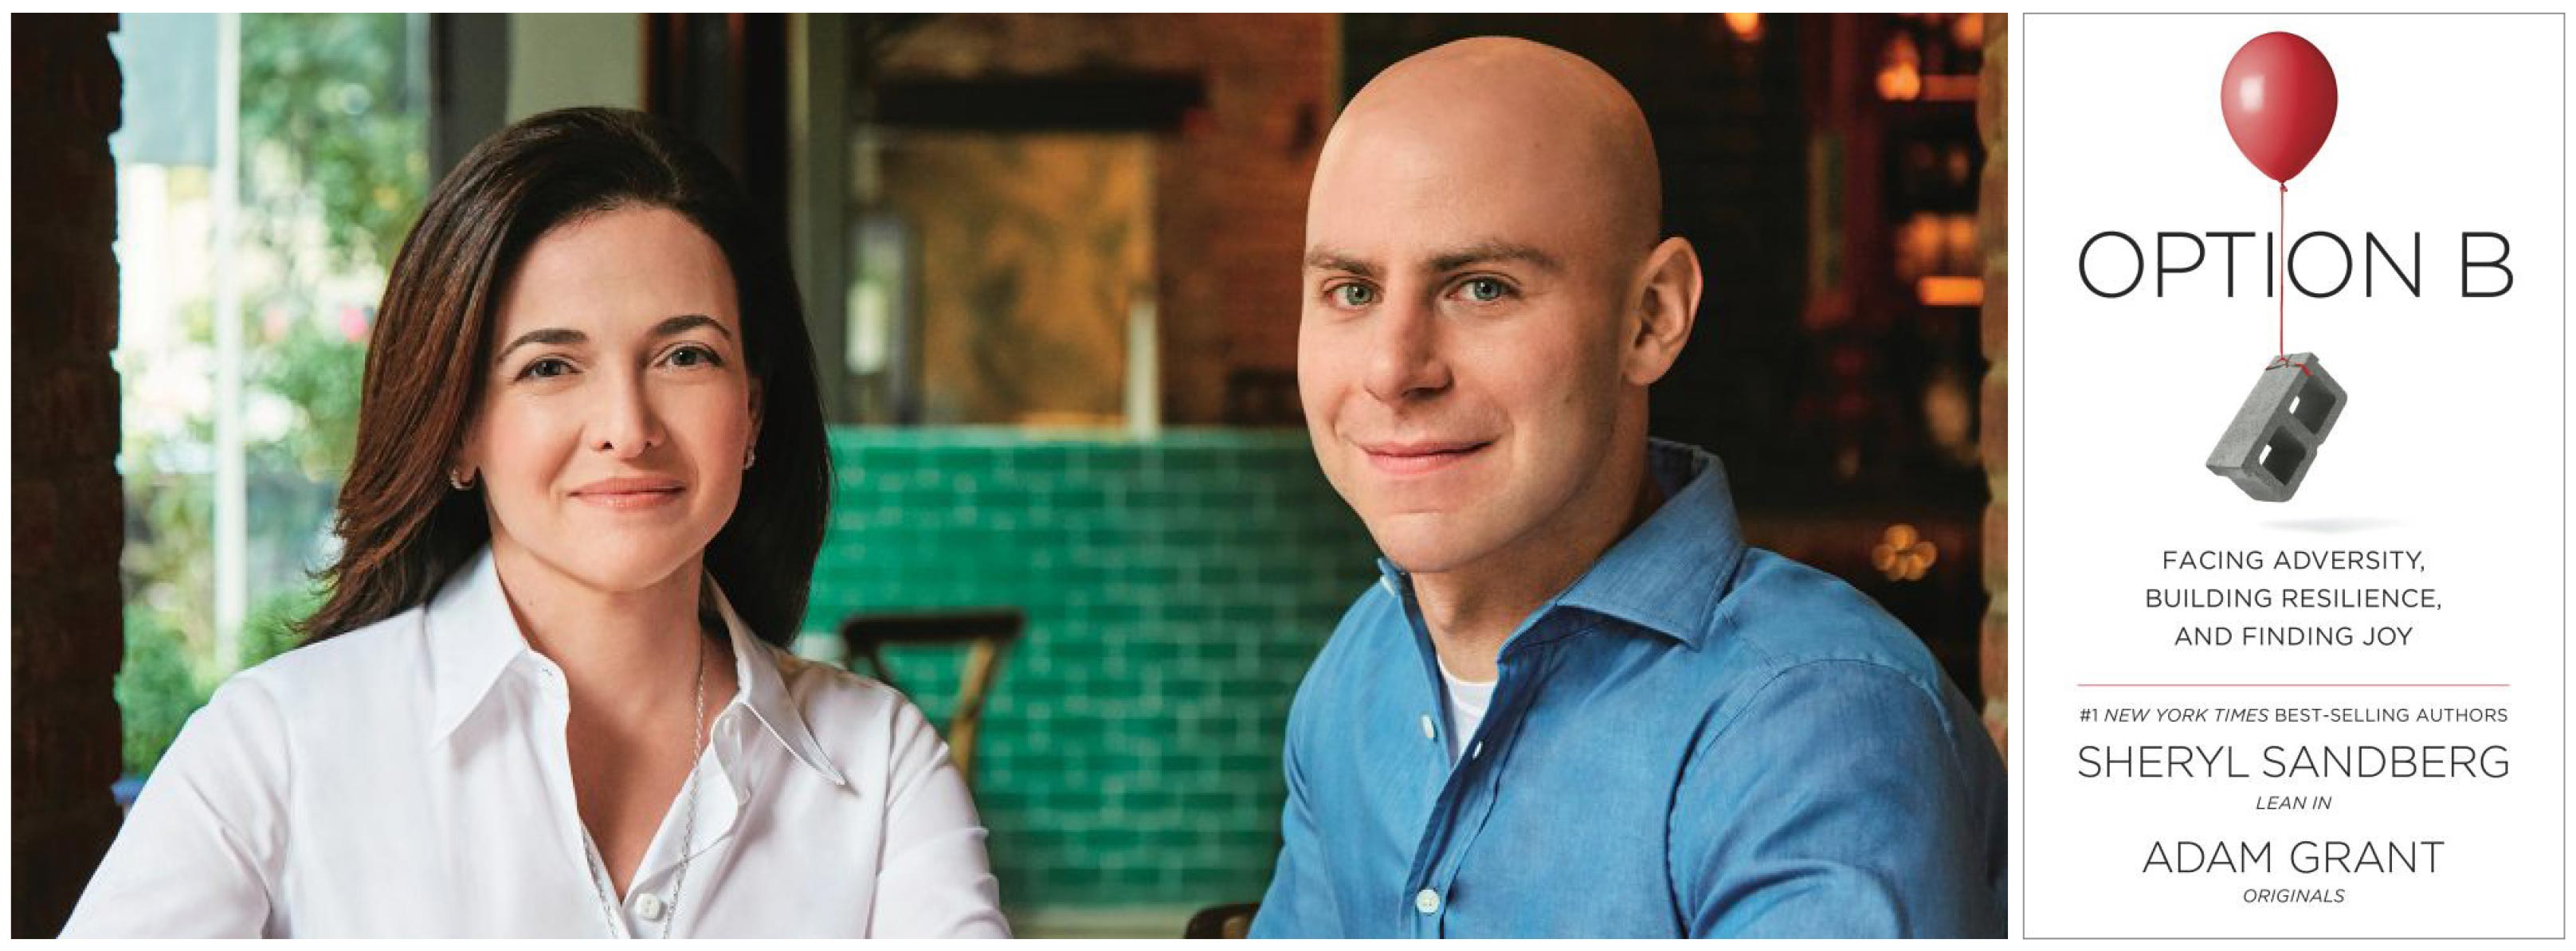 A Q&A with Sheryl Sandberg and Adam Grant about Option B